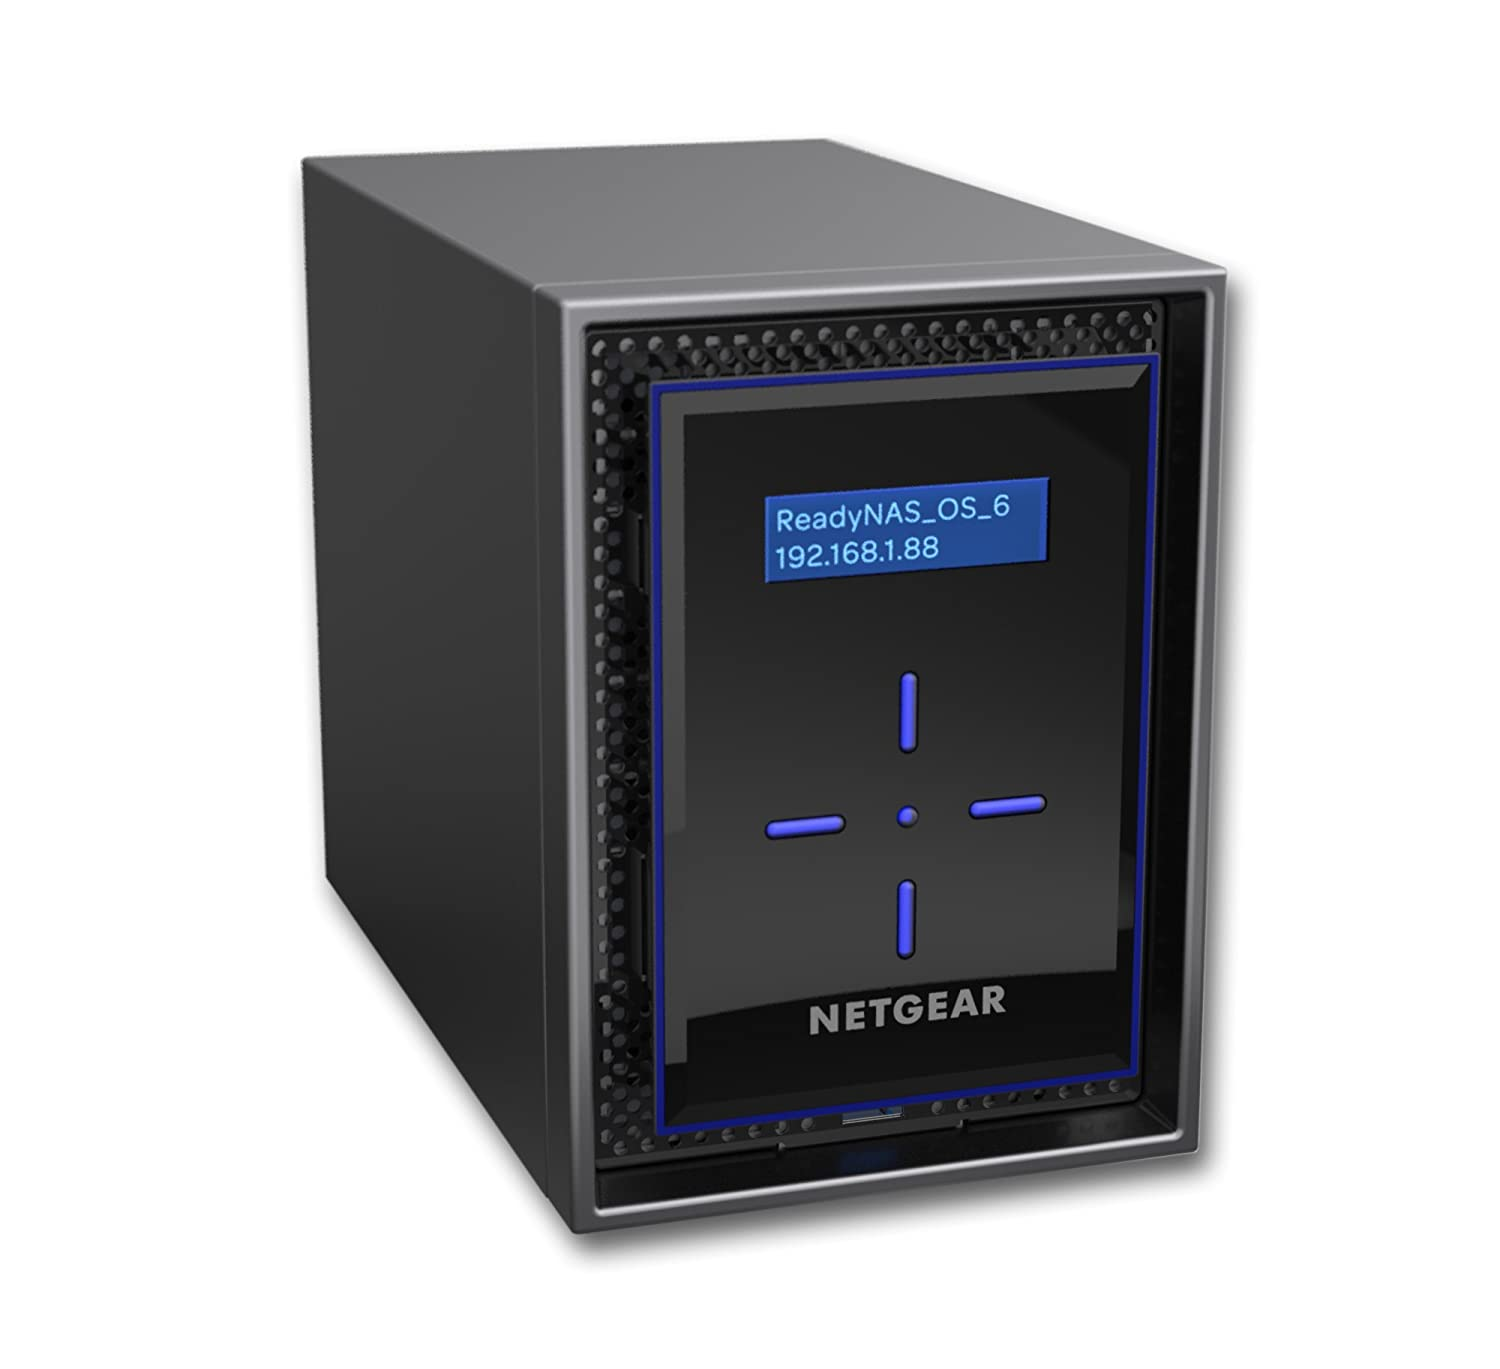 NETGEAR ReadyNAS RN422 2 Bay Diskless High Performance NAS, 20TB Capacity Network Attached Storage, Intel 1.5GHz Dual Core Processor, 2GB RAM, (RN42200)